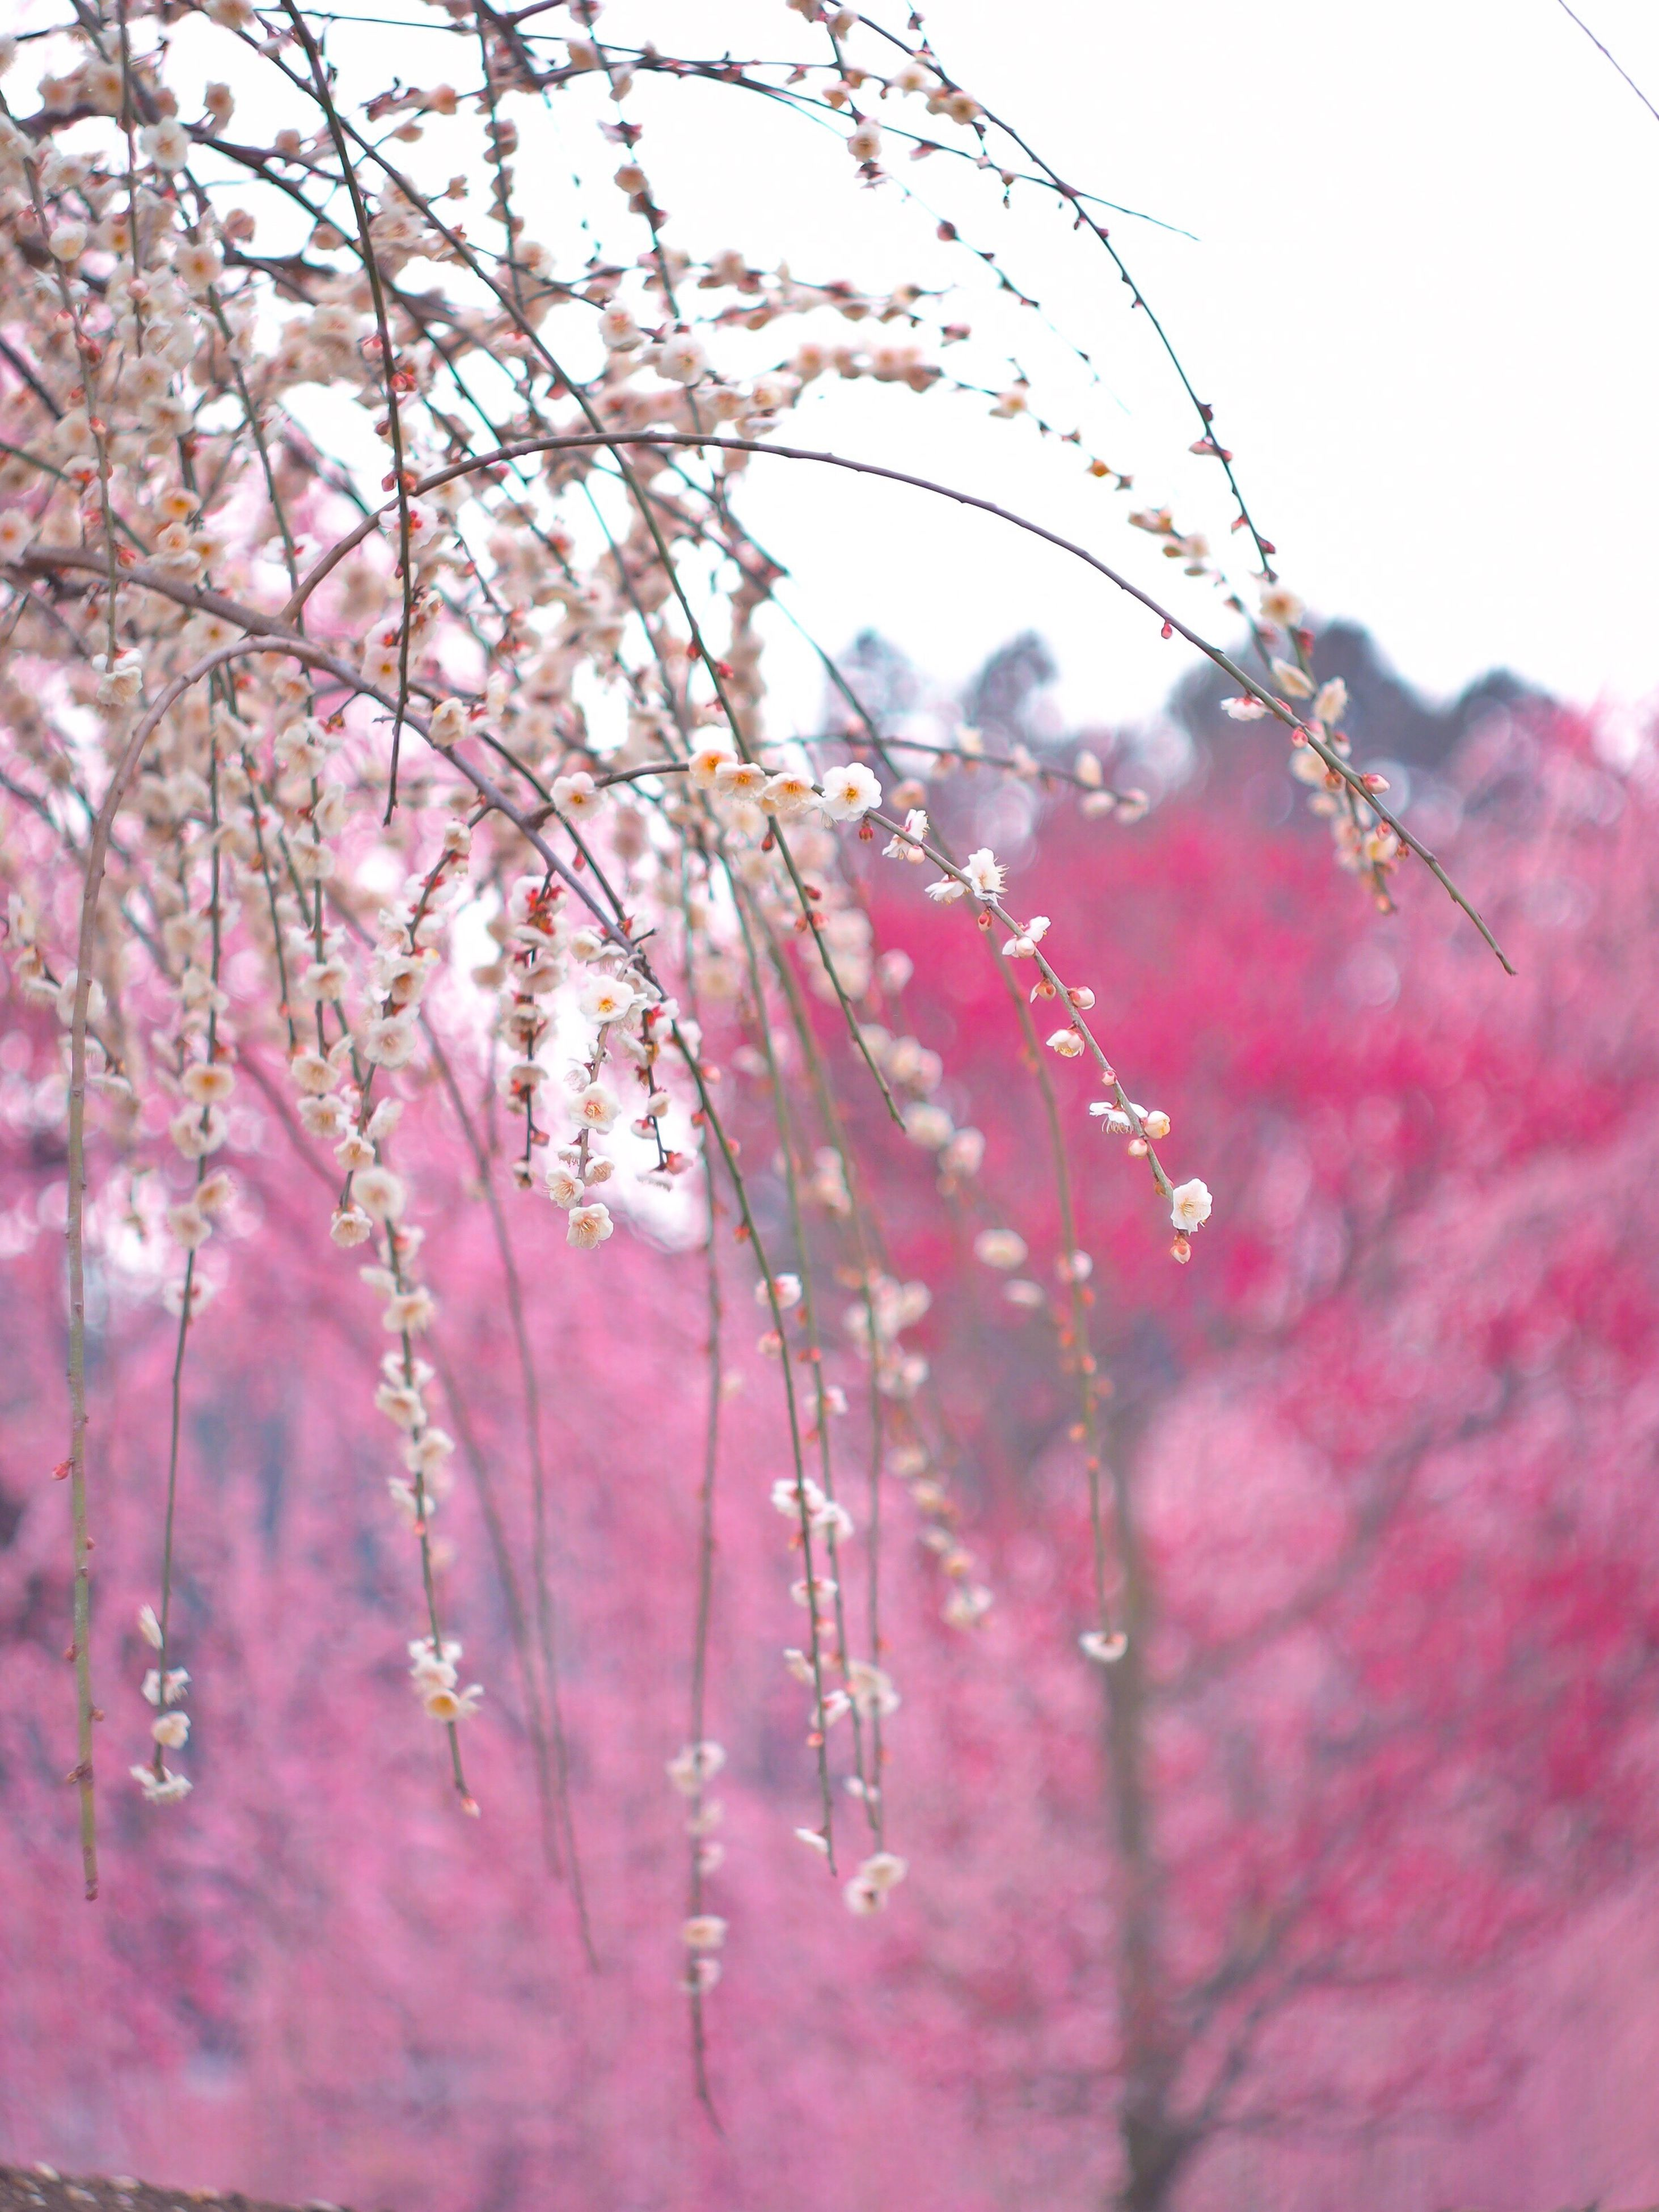 flower, fragility, freshness, growth, petal, beauty in nature, pink color, close-up, nature, focus on foreground, selective focus, plant, stem, blossom, in bloom, flower head, blooming, botany, red, twig